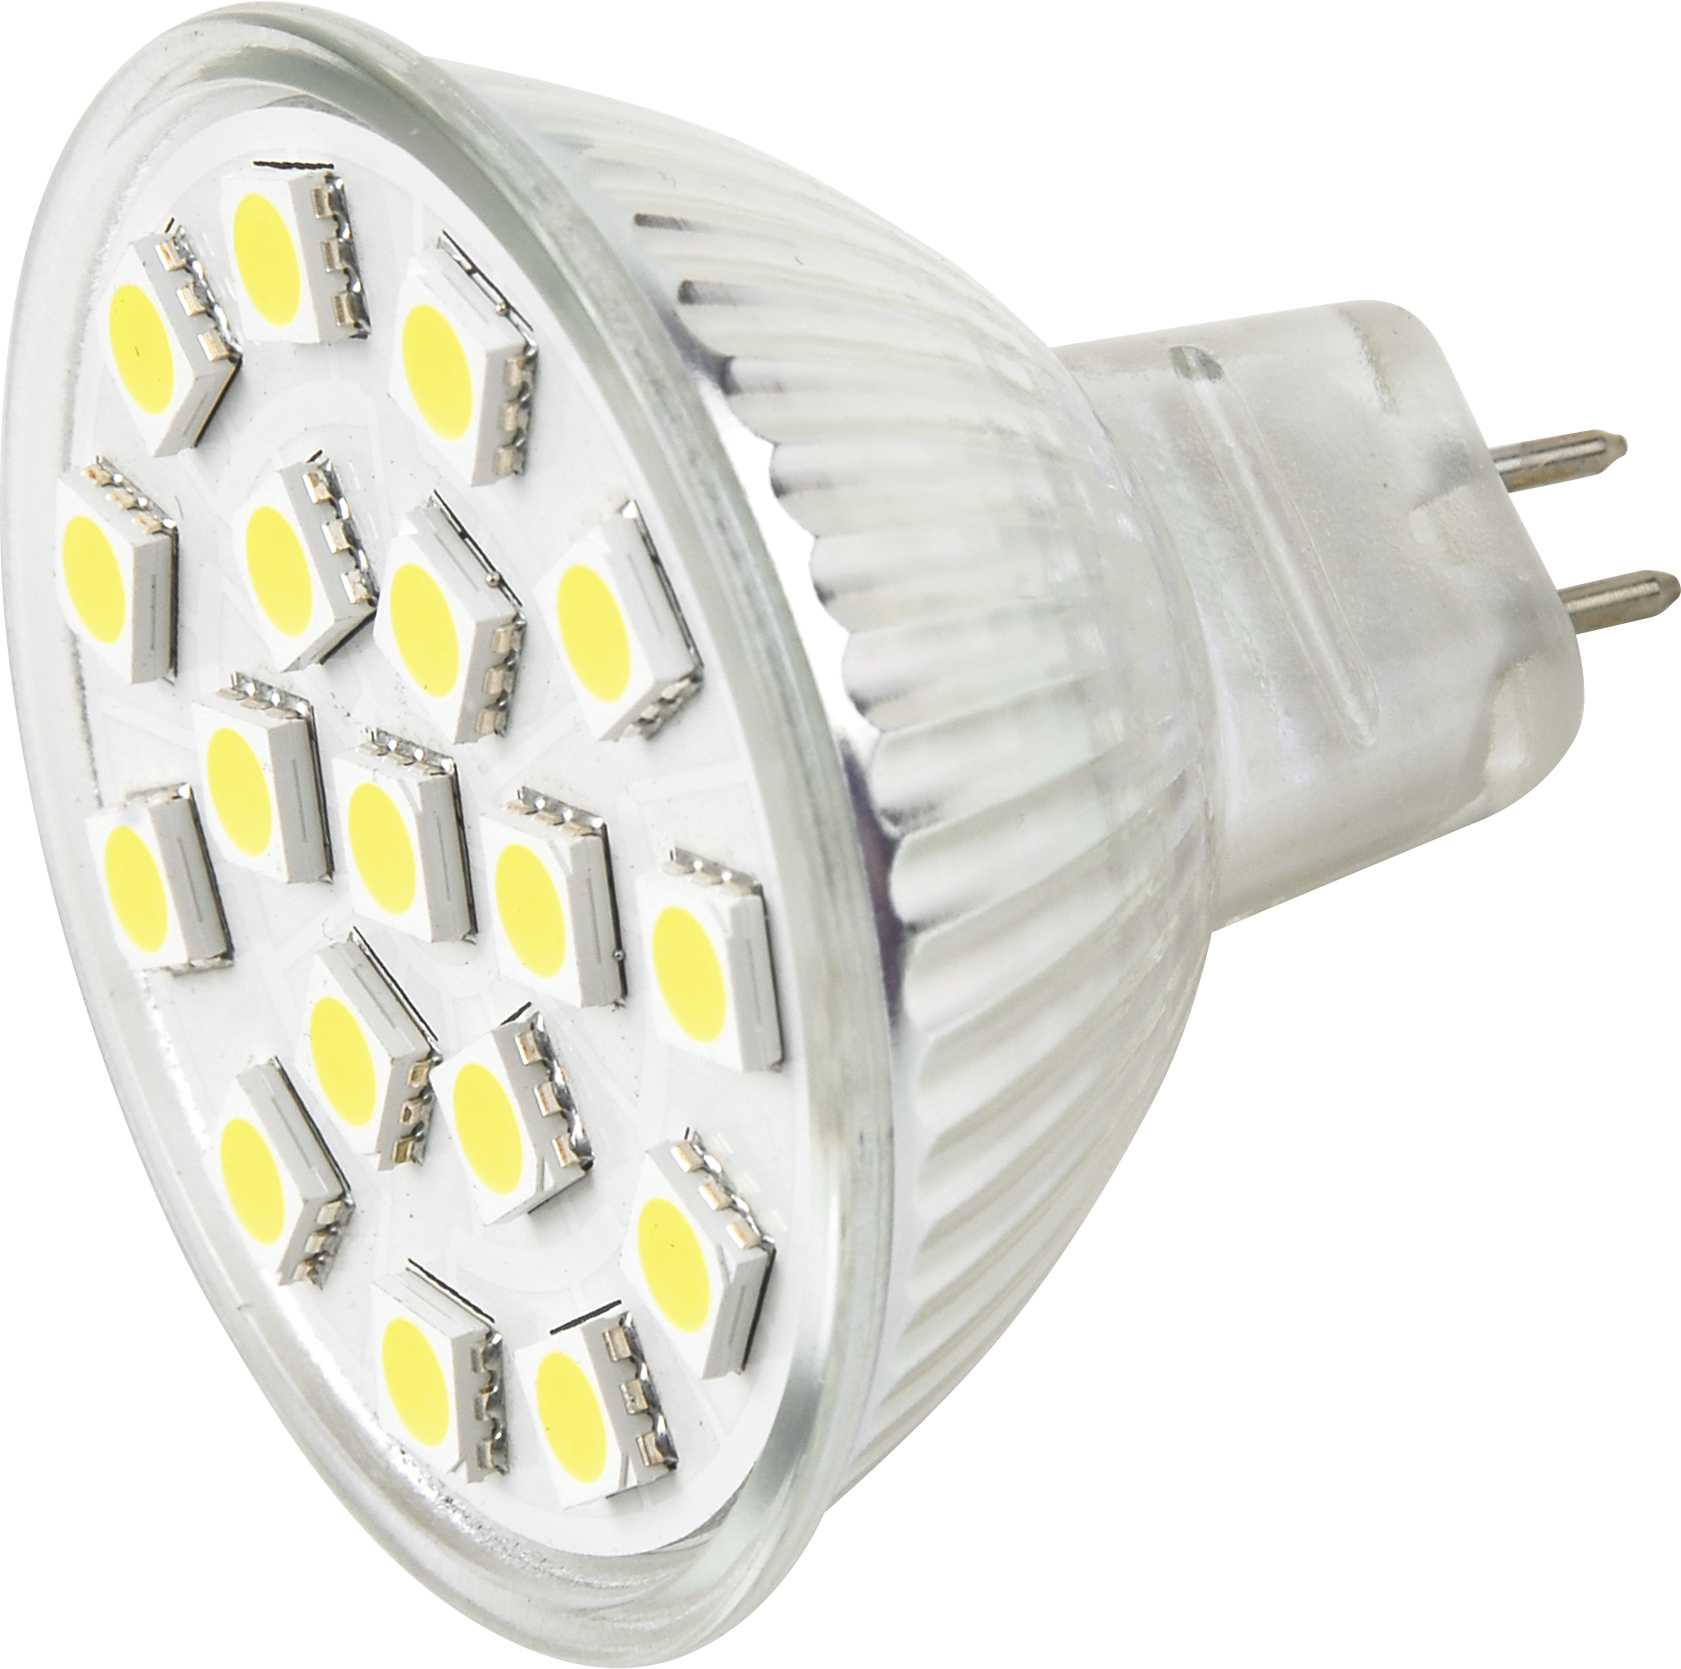 LED-Bulb-MR16-SMD- | The Landscape Guru - A Place to Land ...